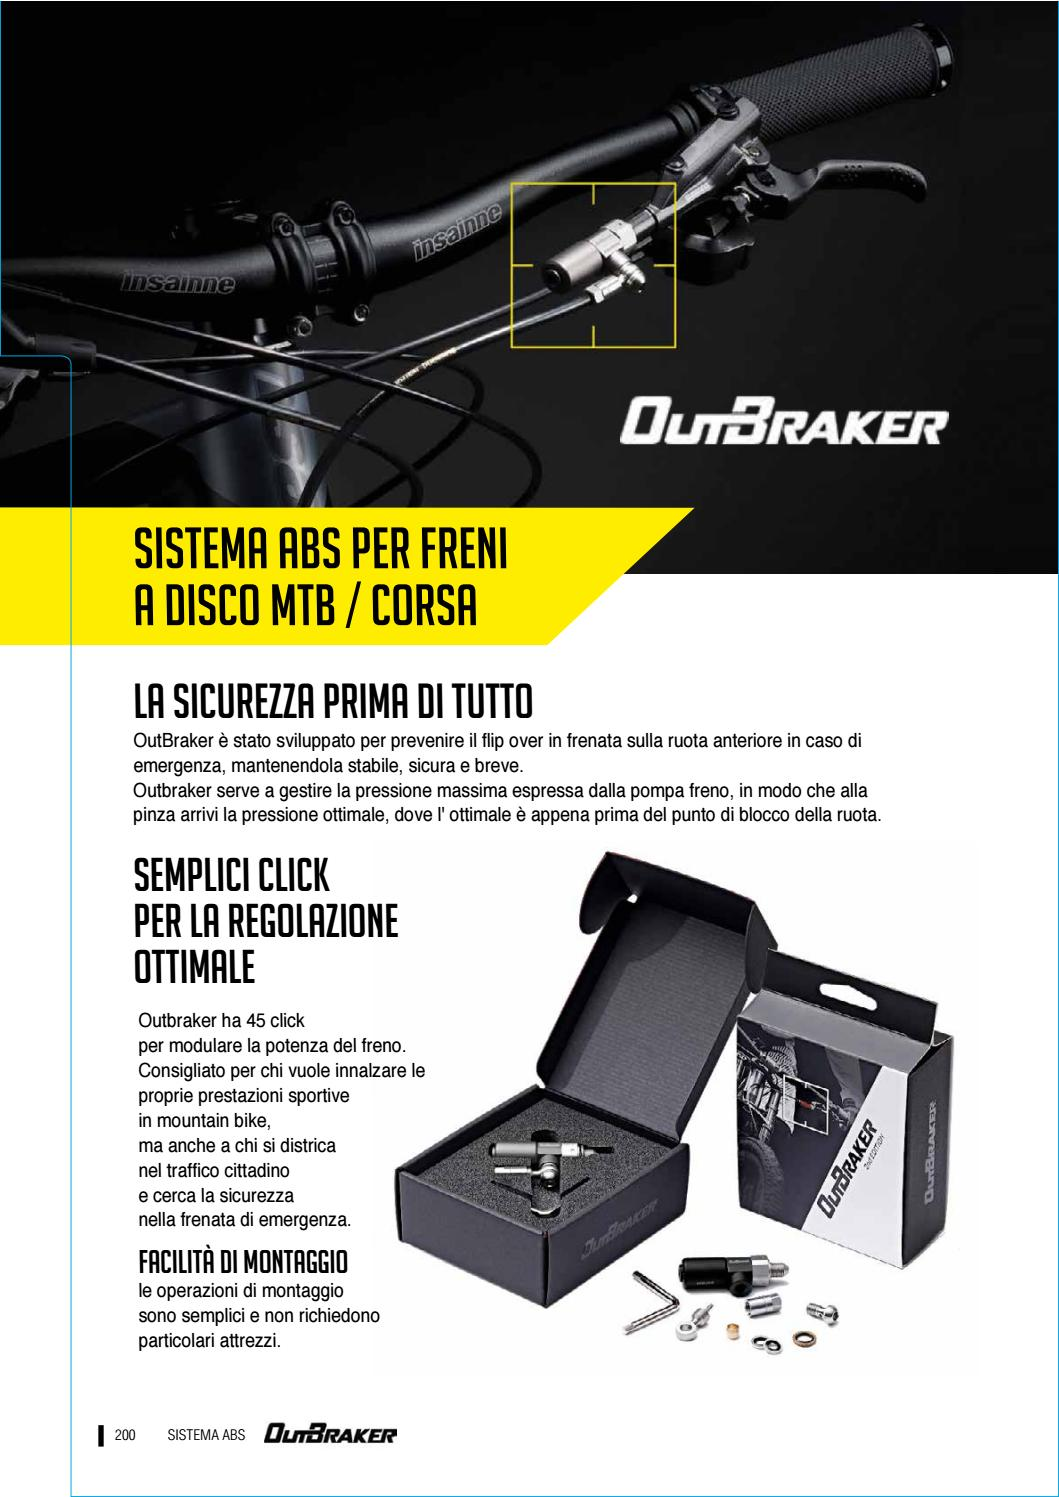 Outbraker 2019 by Gist Italia